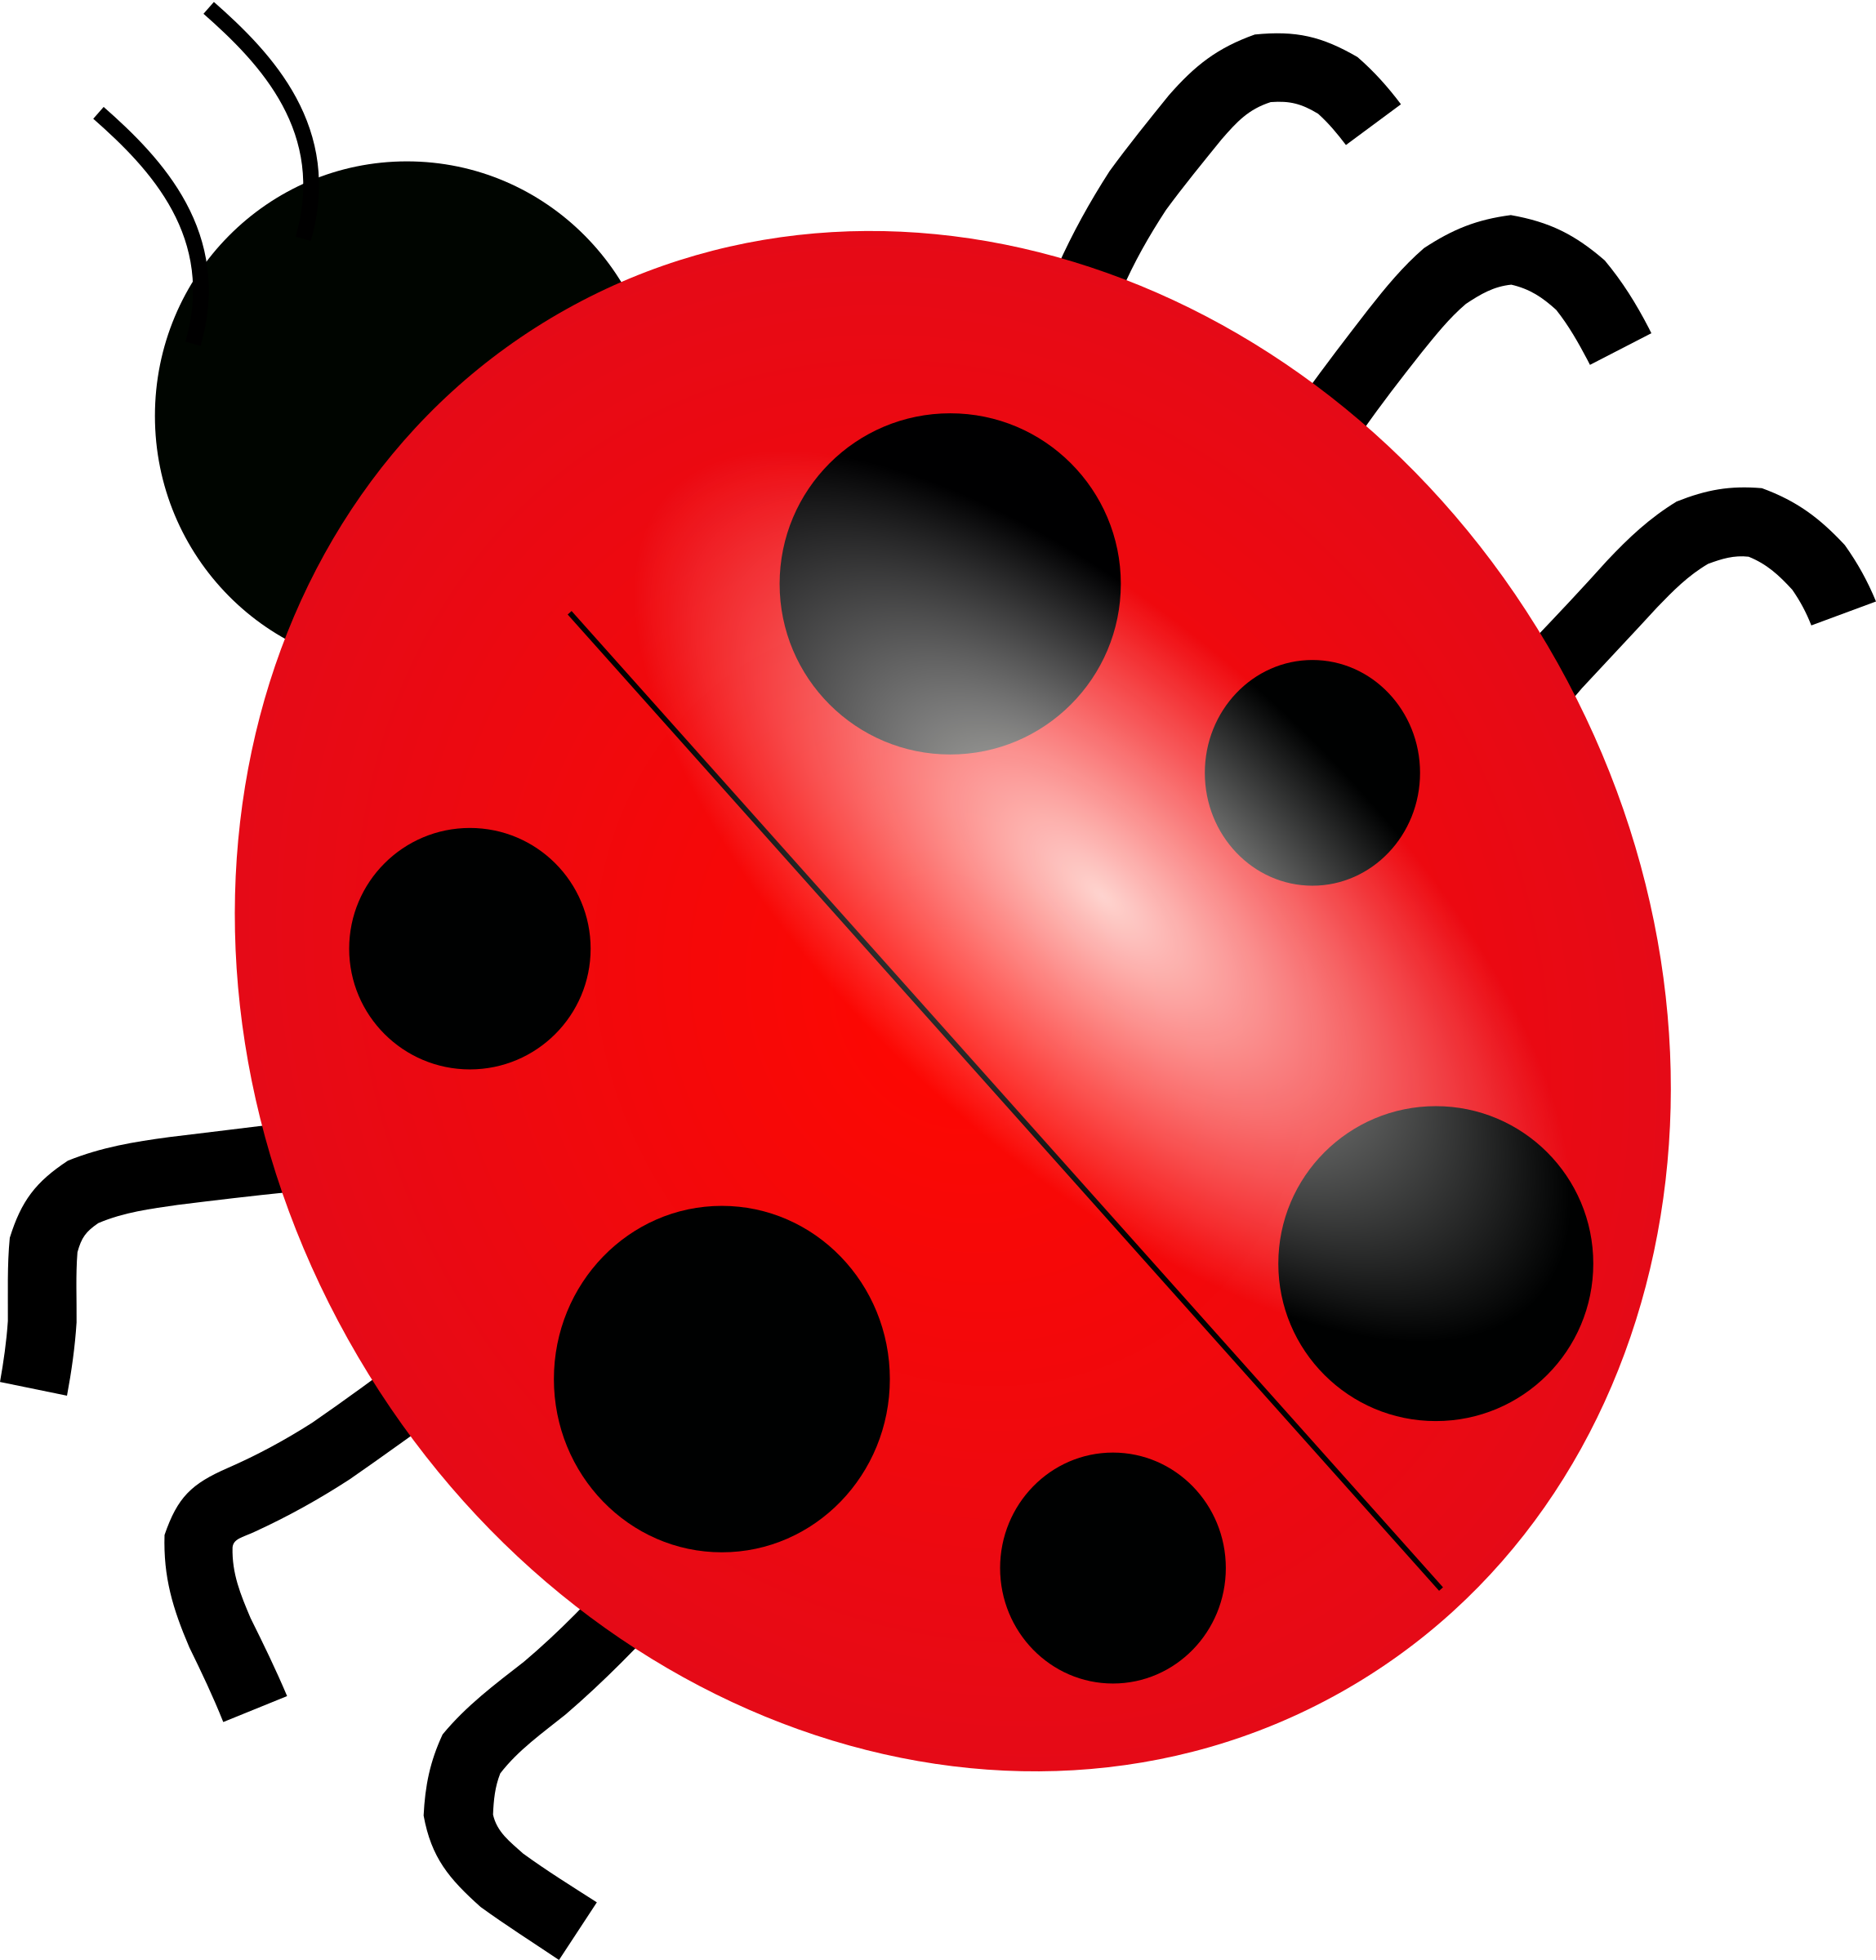 Big image png. Ladybug clipart cartoon